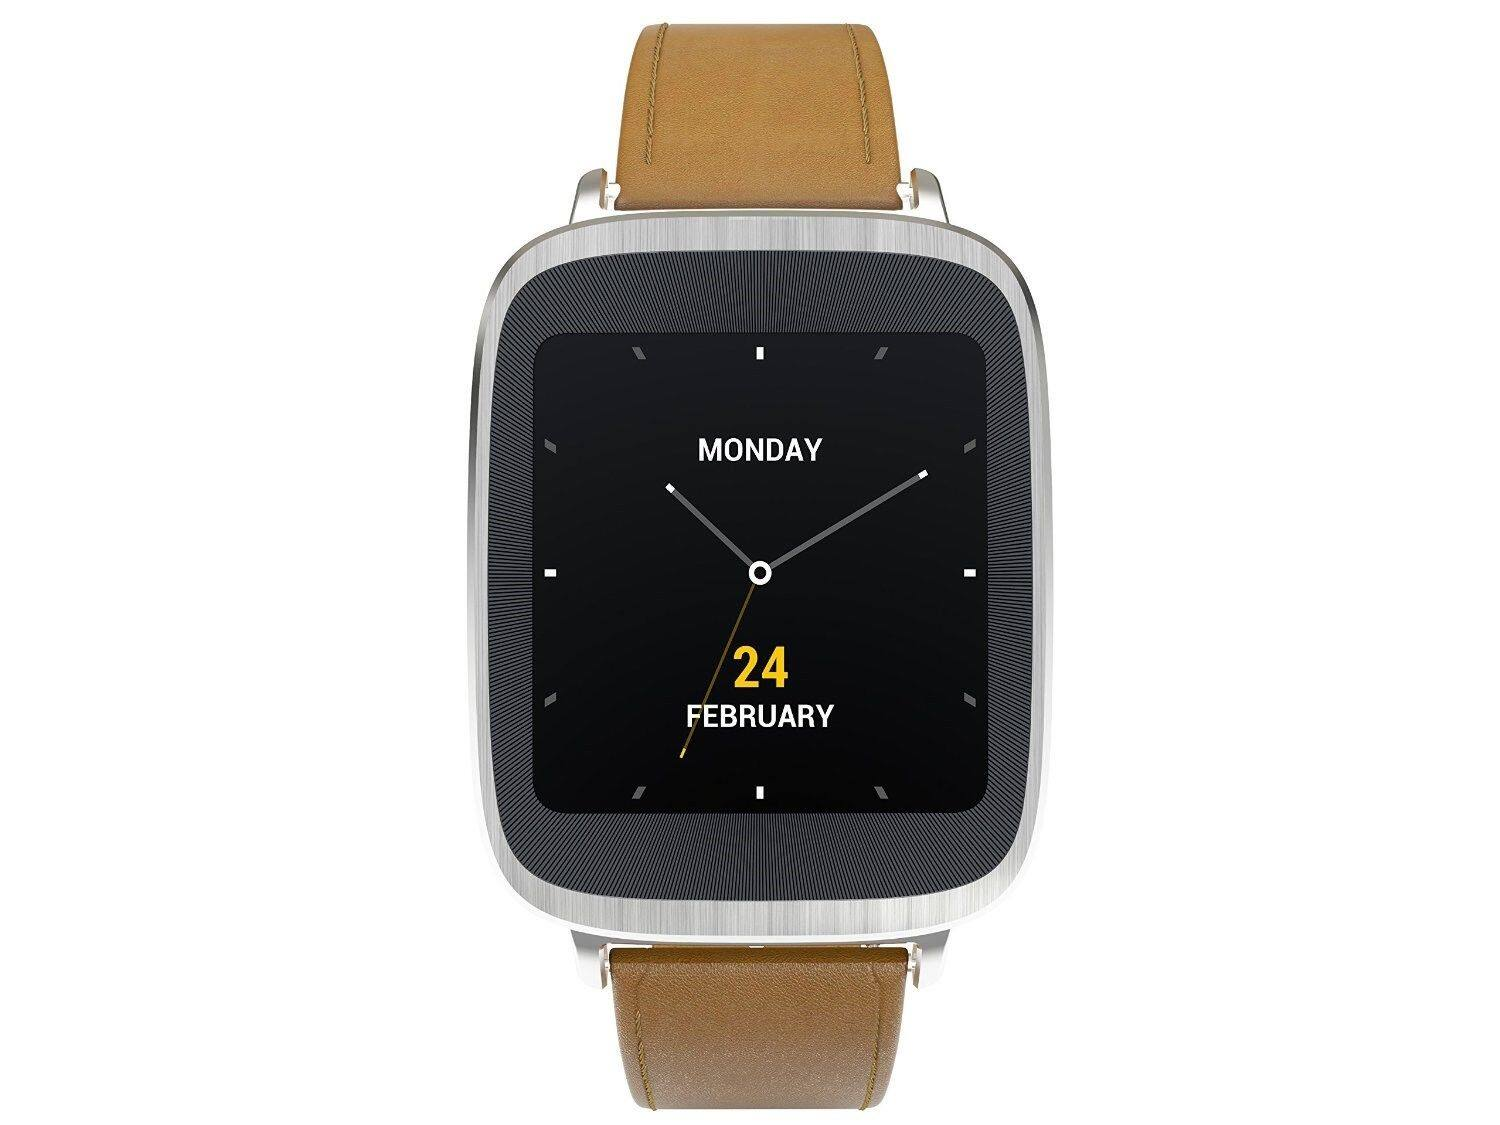 Asus ZenWatch Stainless Steel Smartwatch w/ Brown Leather Band (Refurbished) - $64.99 + Free Shipping @ eBay